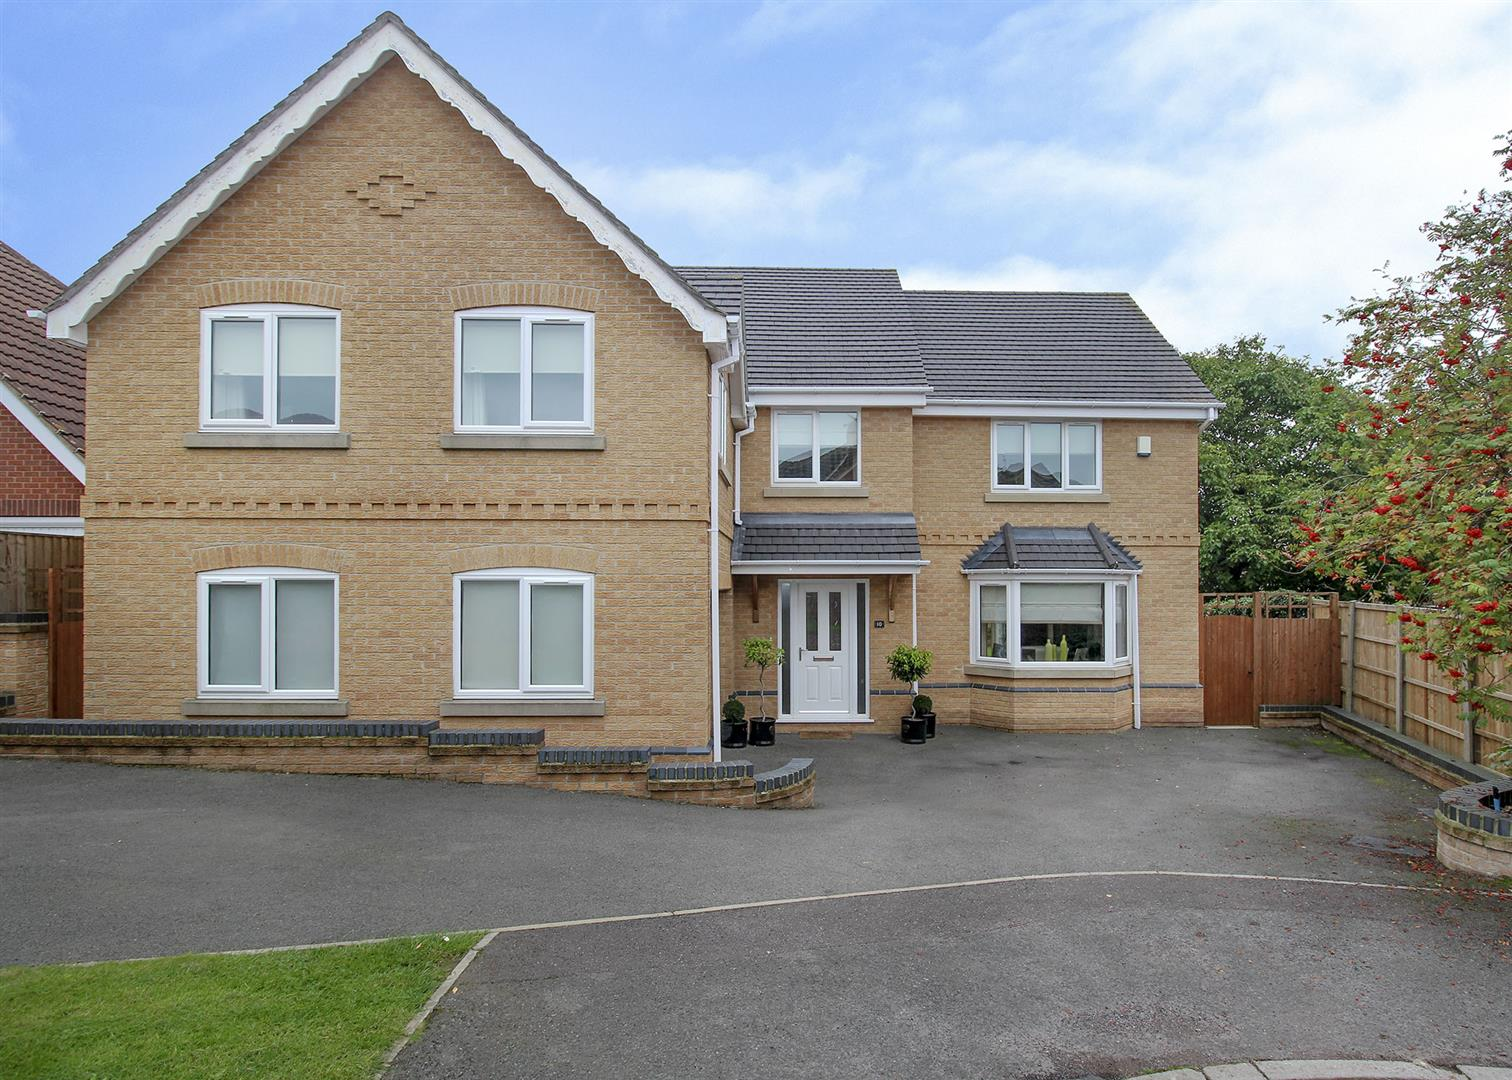 5 Bedrooms Detached House for sale in Tilford Gardens, Stapleford